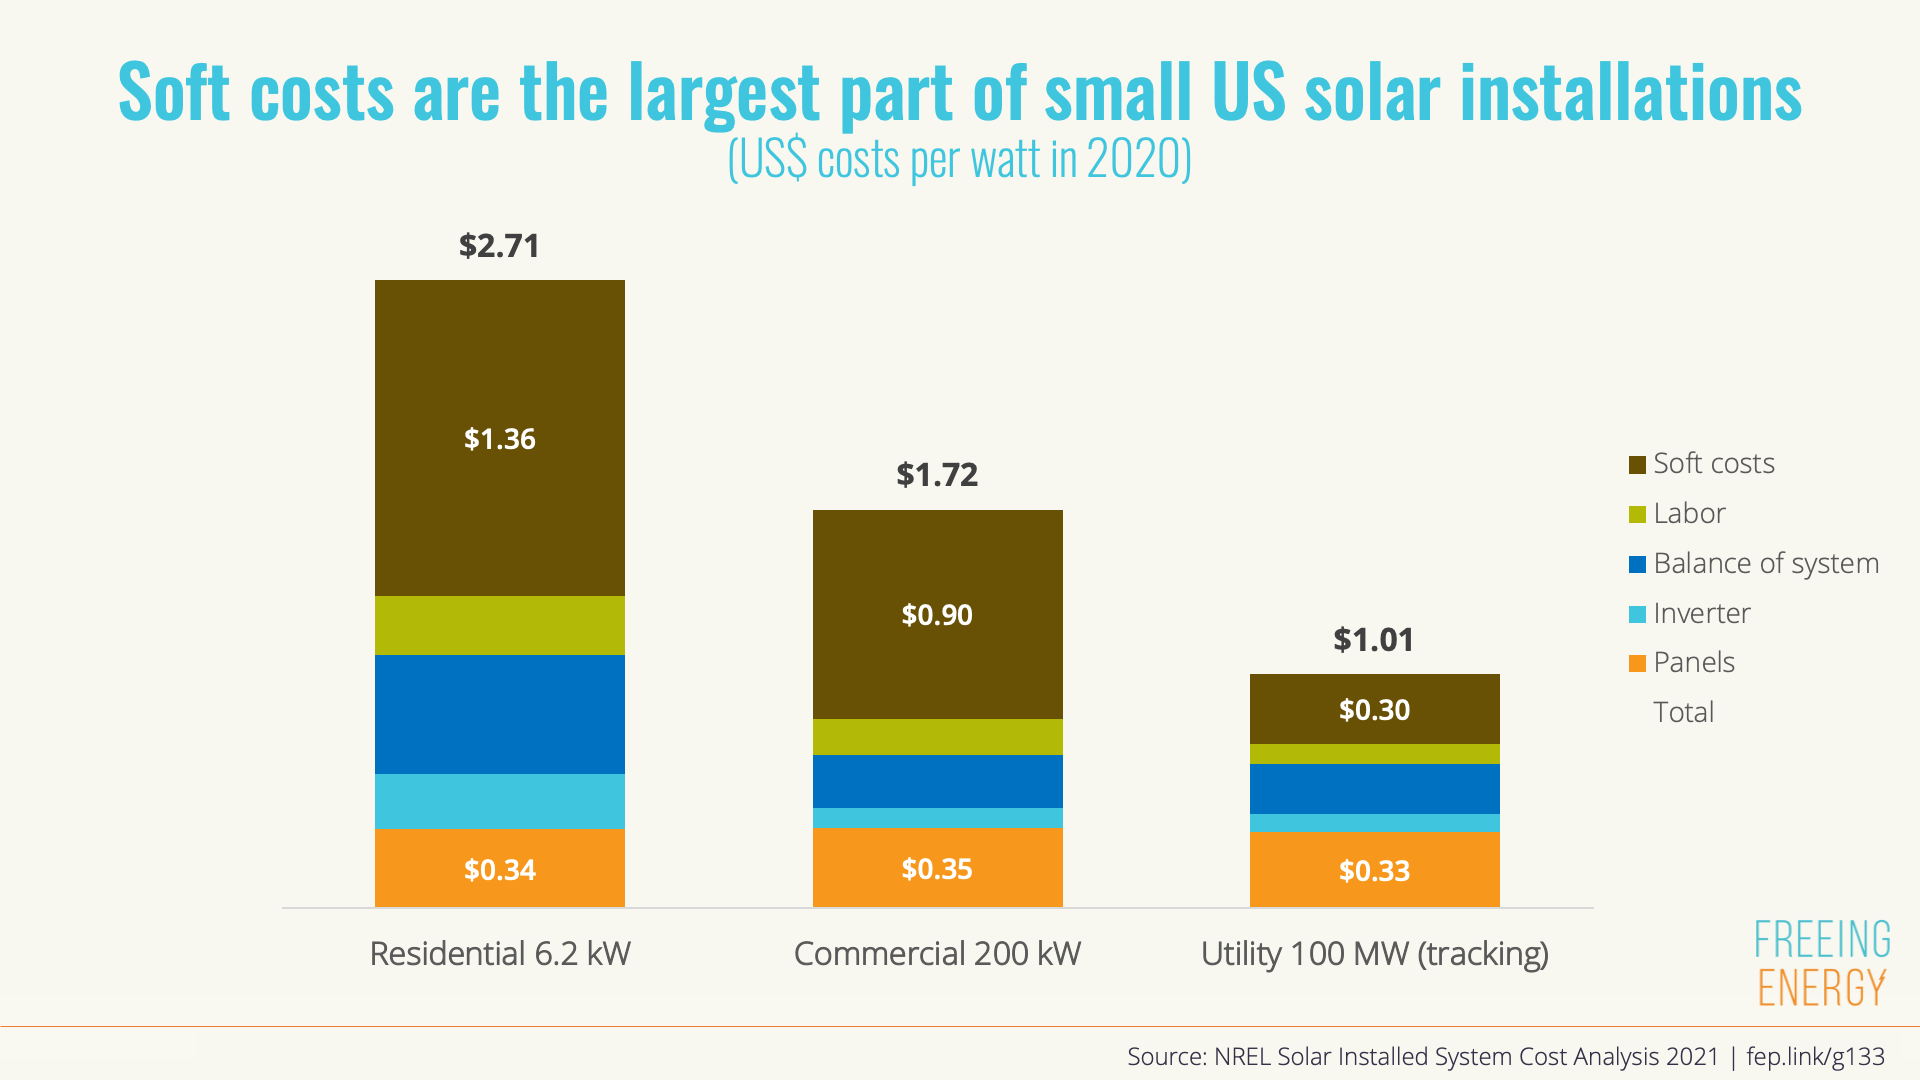 costs of utility commercial and residential solar